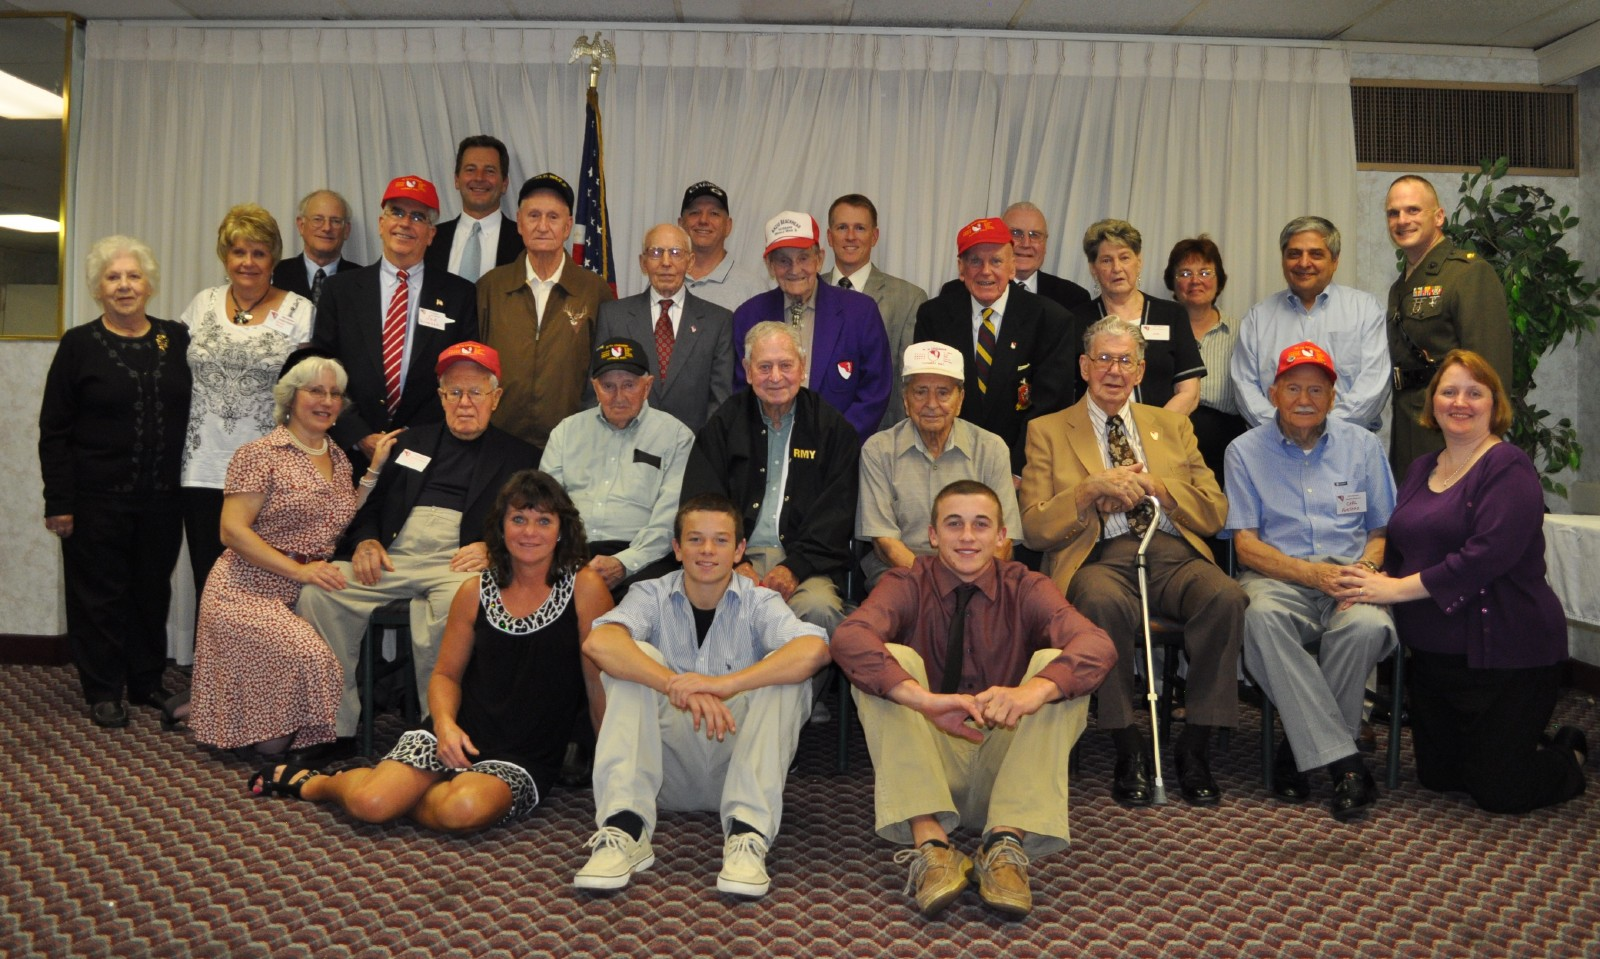 Veterans and family 2011.JPG